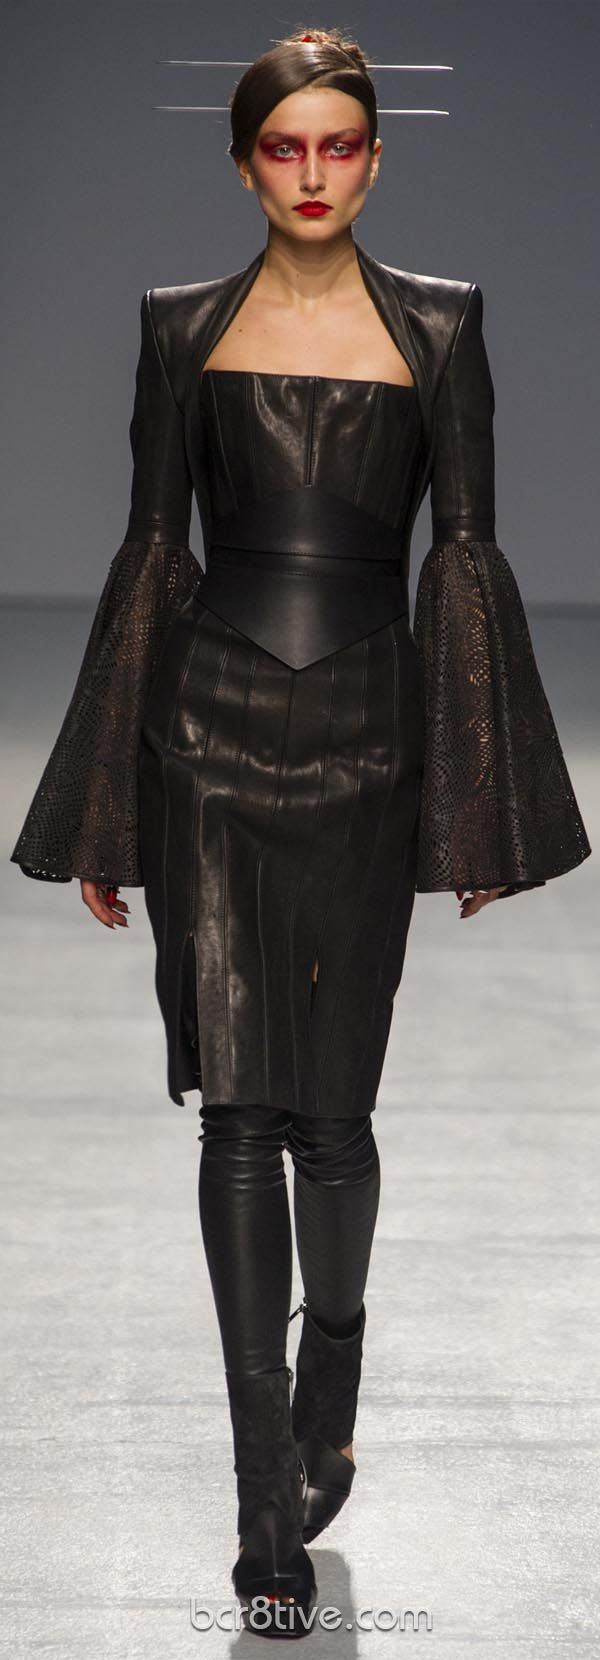 #Gareth Pugh Spring Summer 2013 Ready To Wear Collection